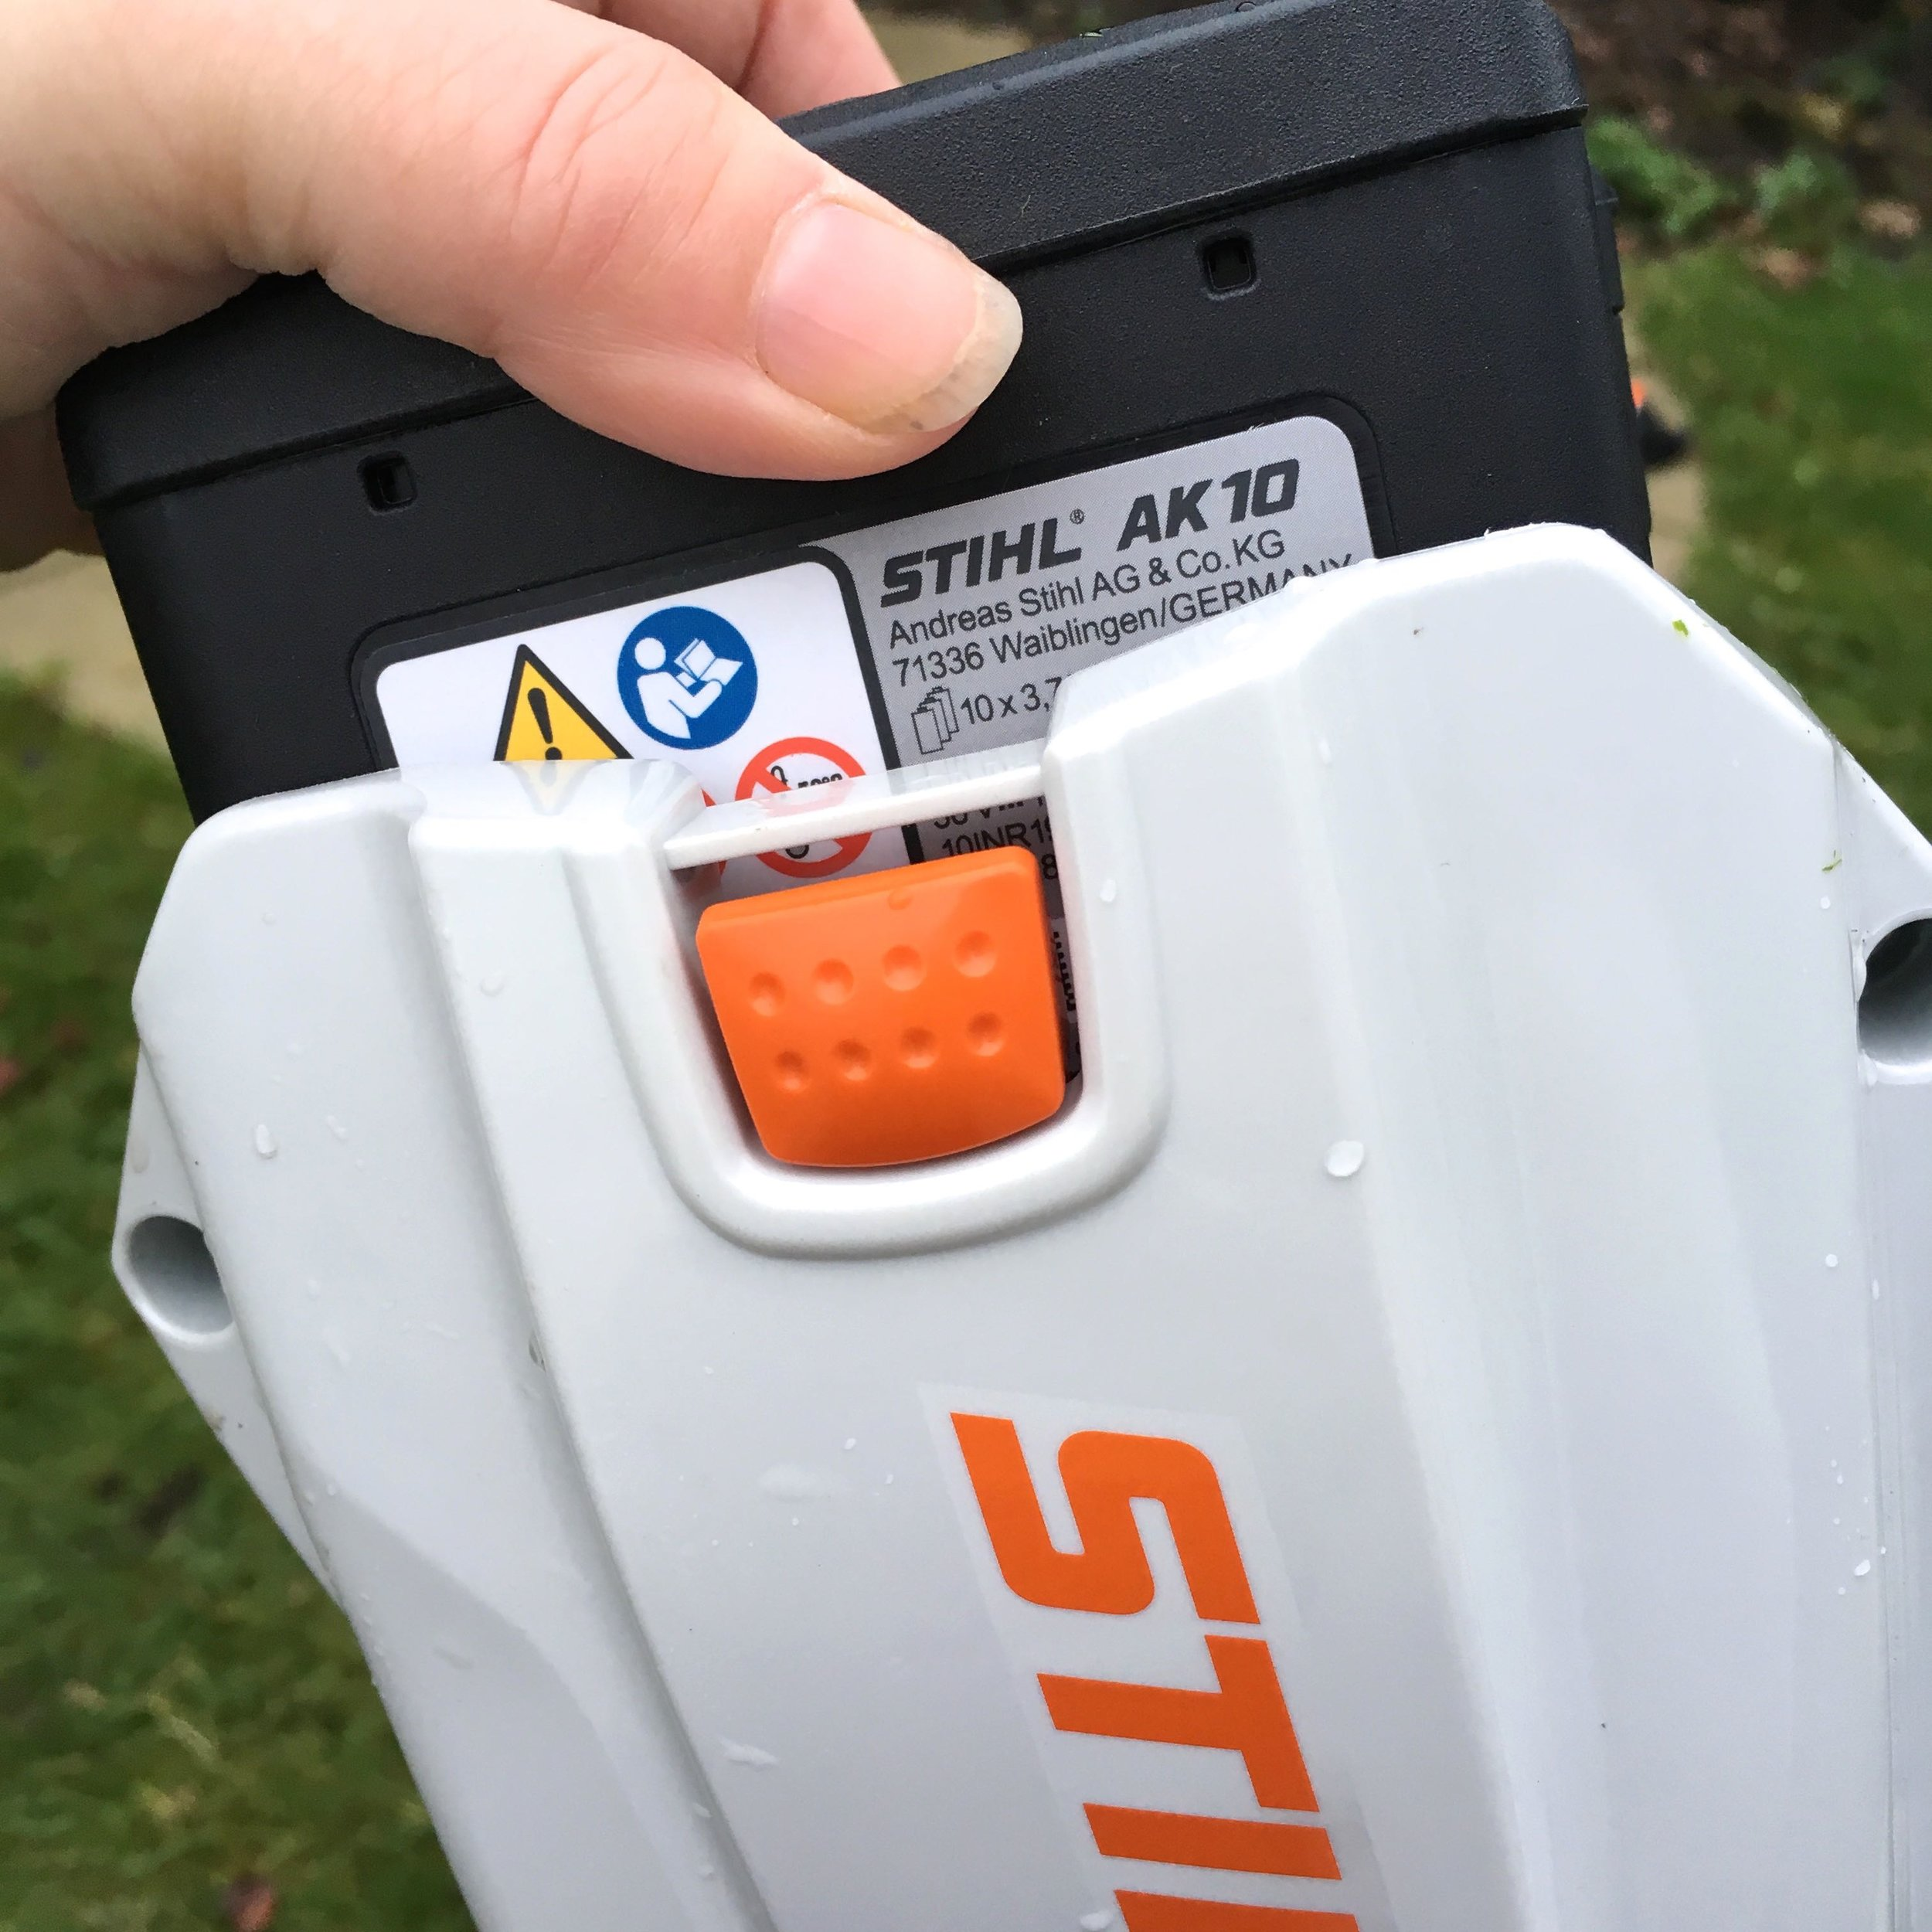 removable rechargeable battery for the Stihl compact range, which are easy to insert and remove